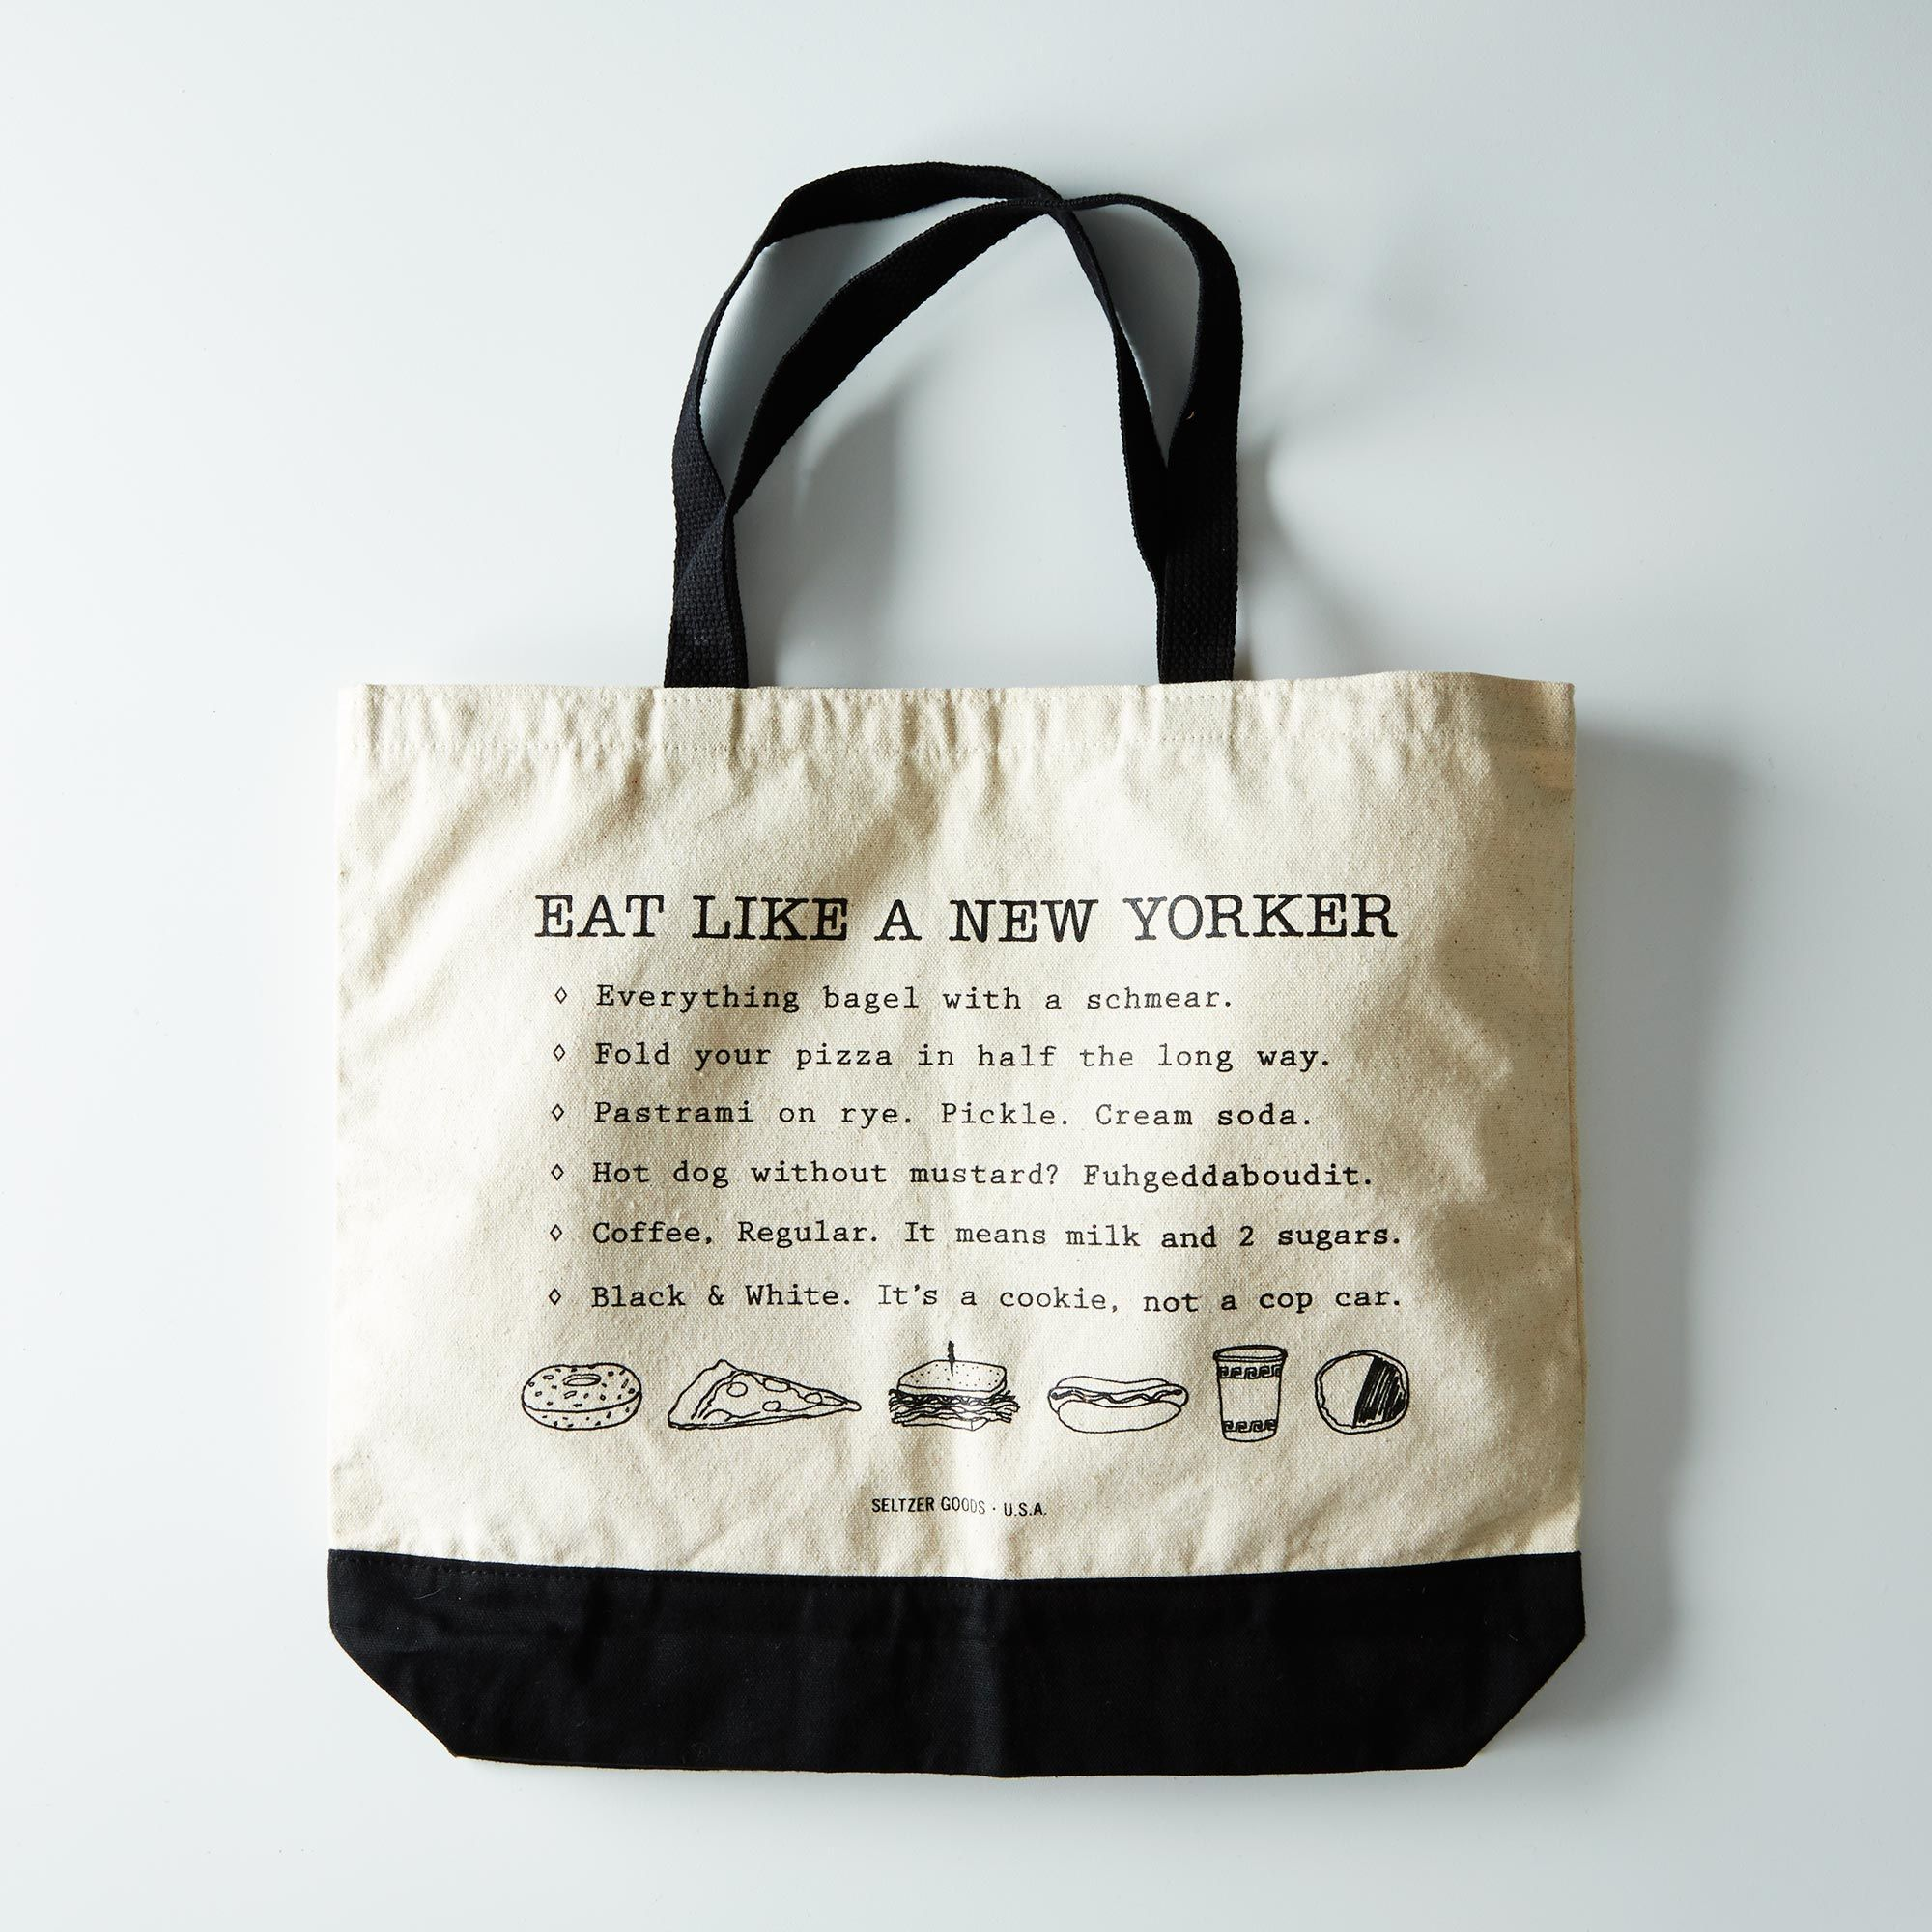 Ef948380 119e 4982 b855 b6258ed1b8cd  2014 0710 seltzer goods eat nyc tote 007